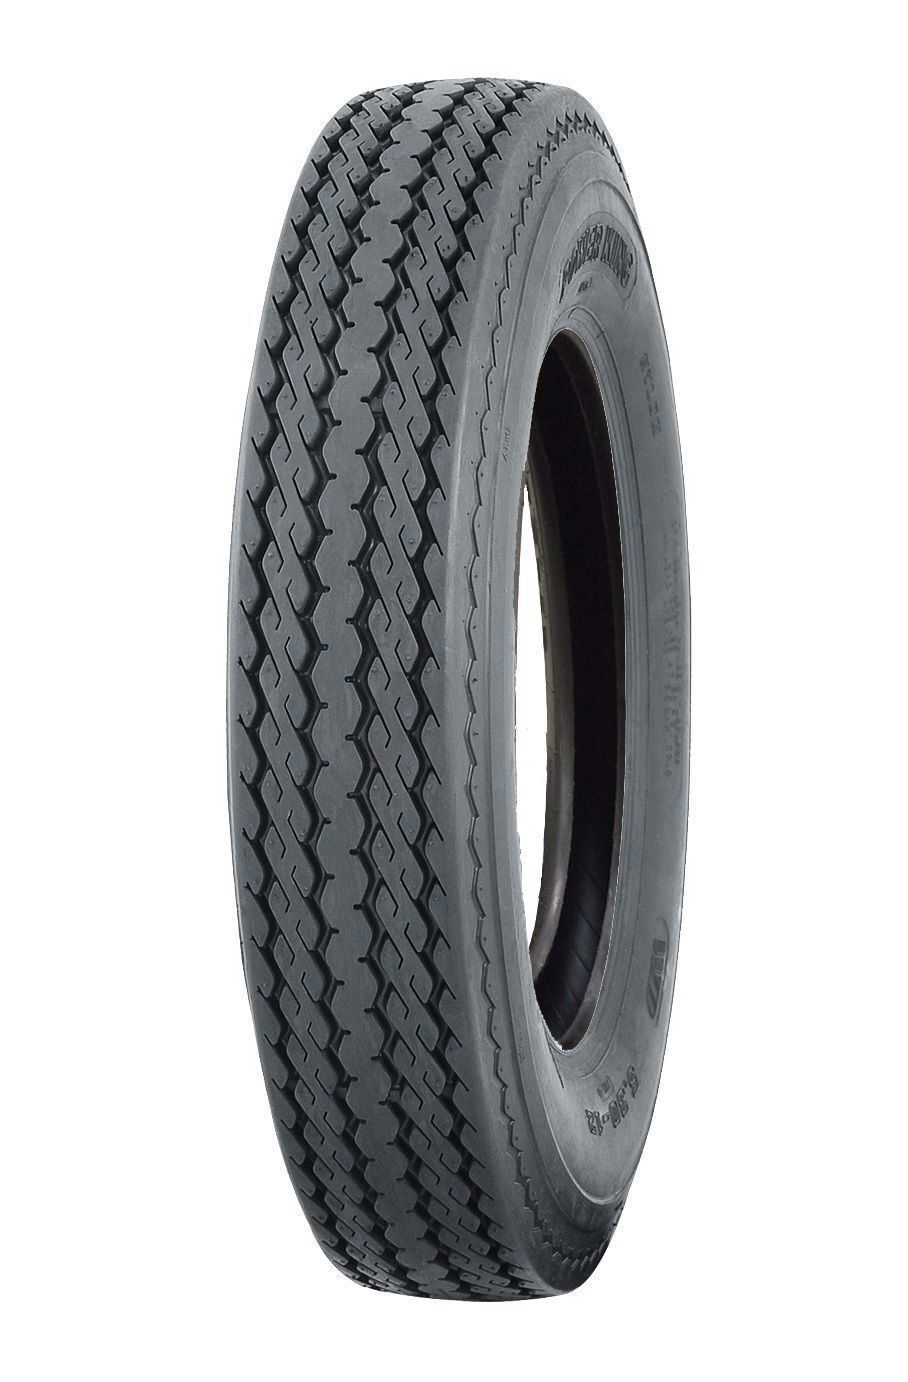 One New Boat Trailer Tire 4.80-12 4.80x12 6PR Load Range C - 11031